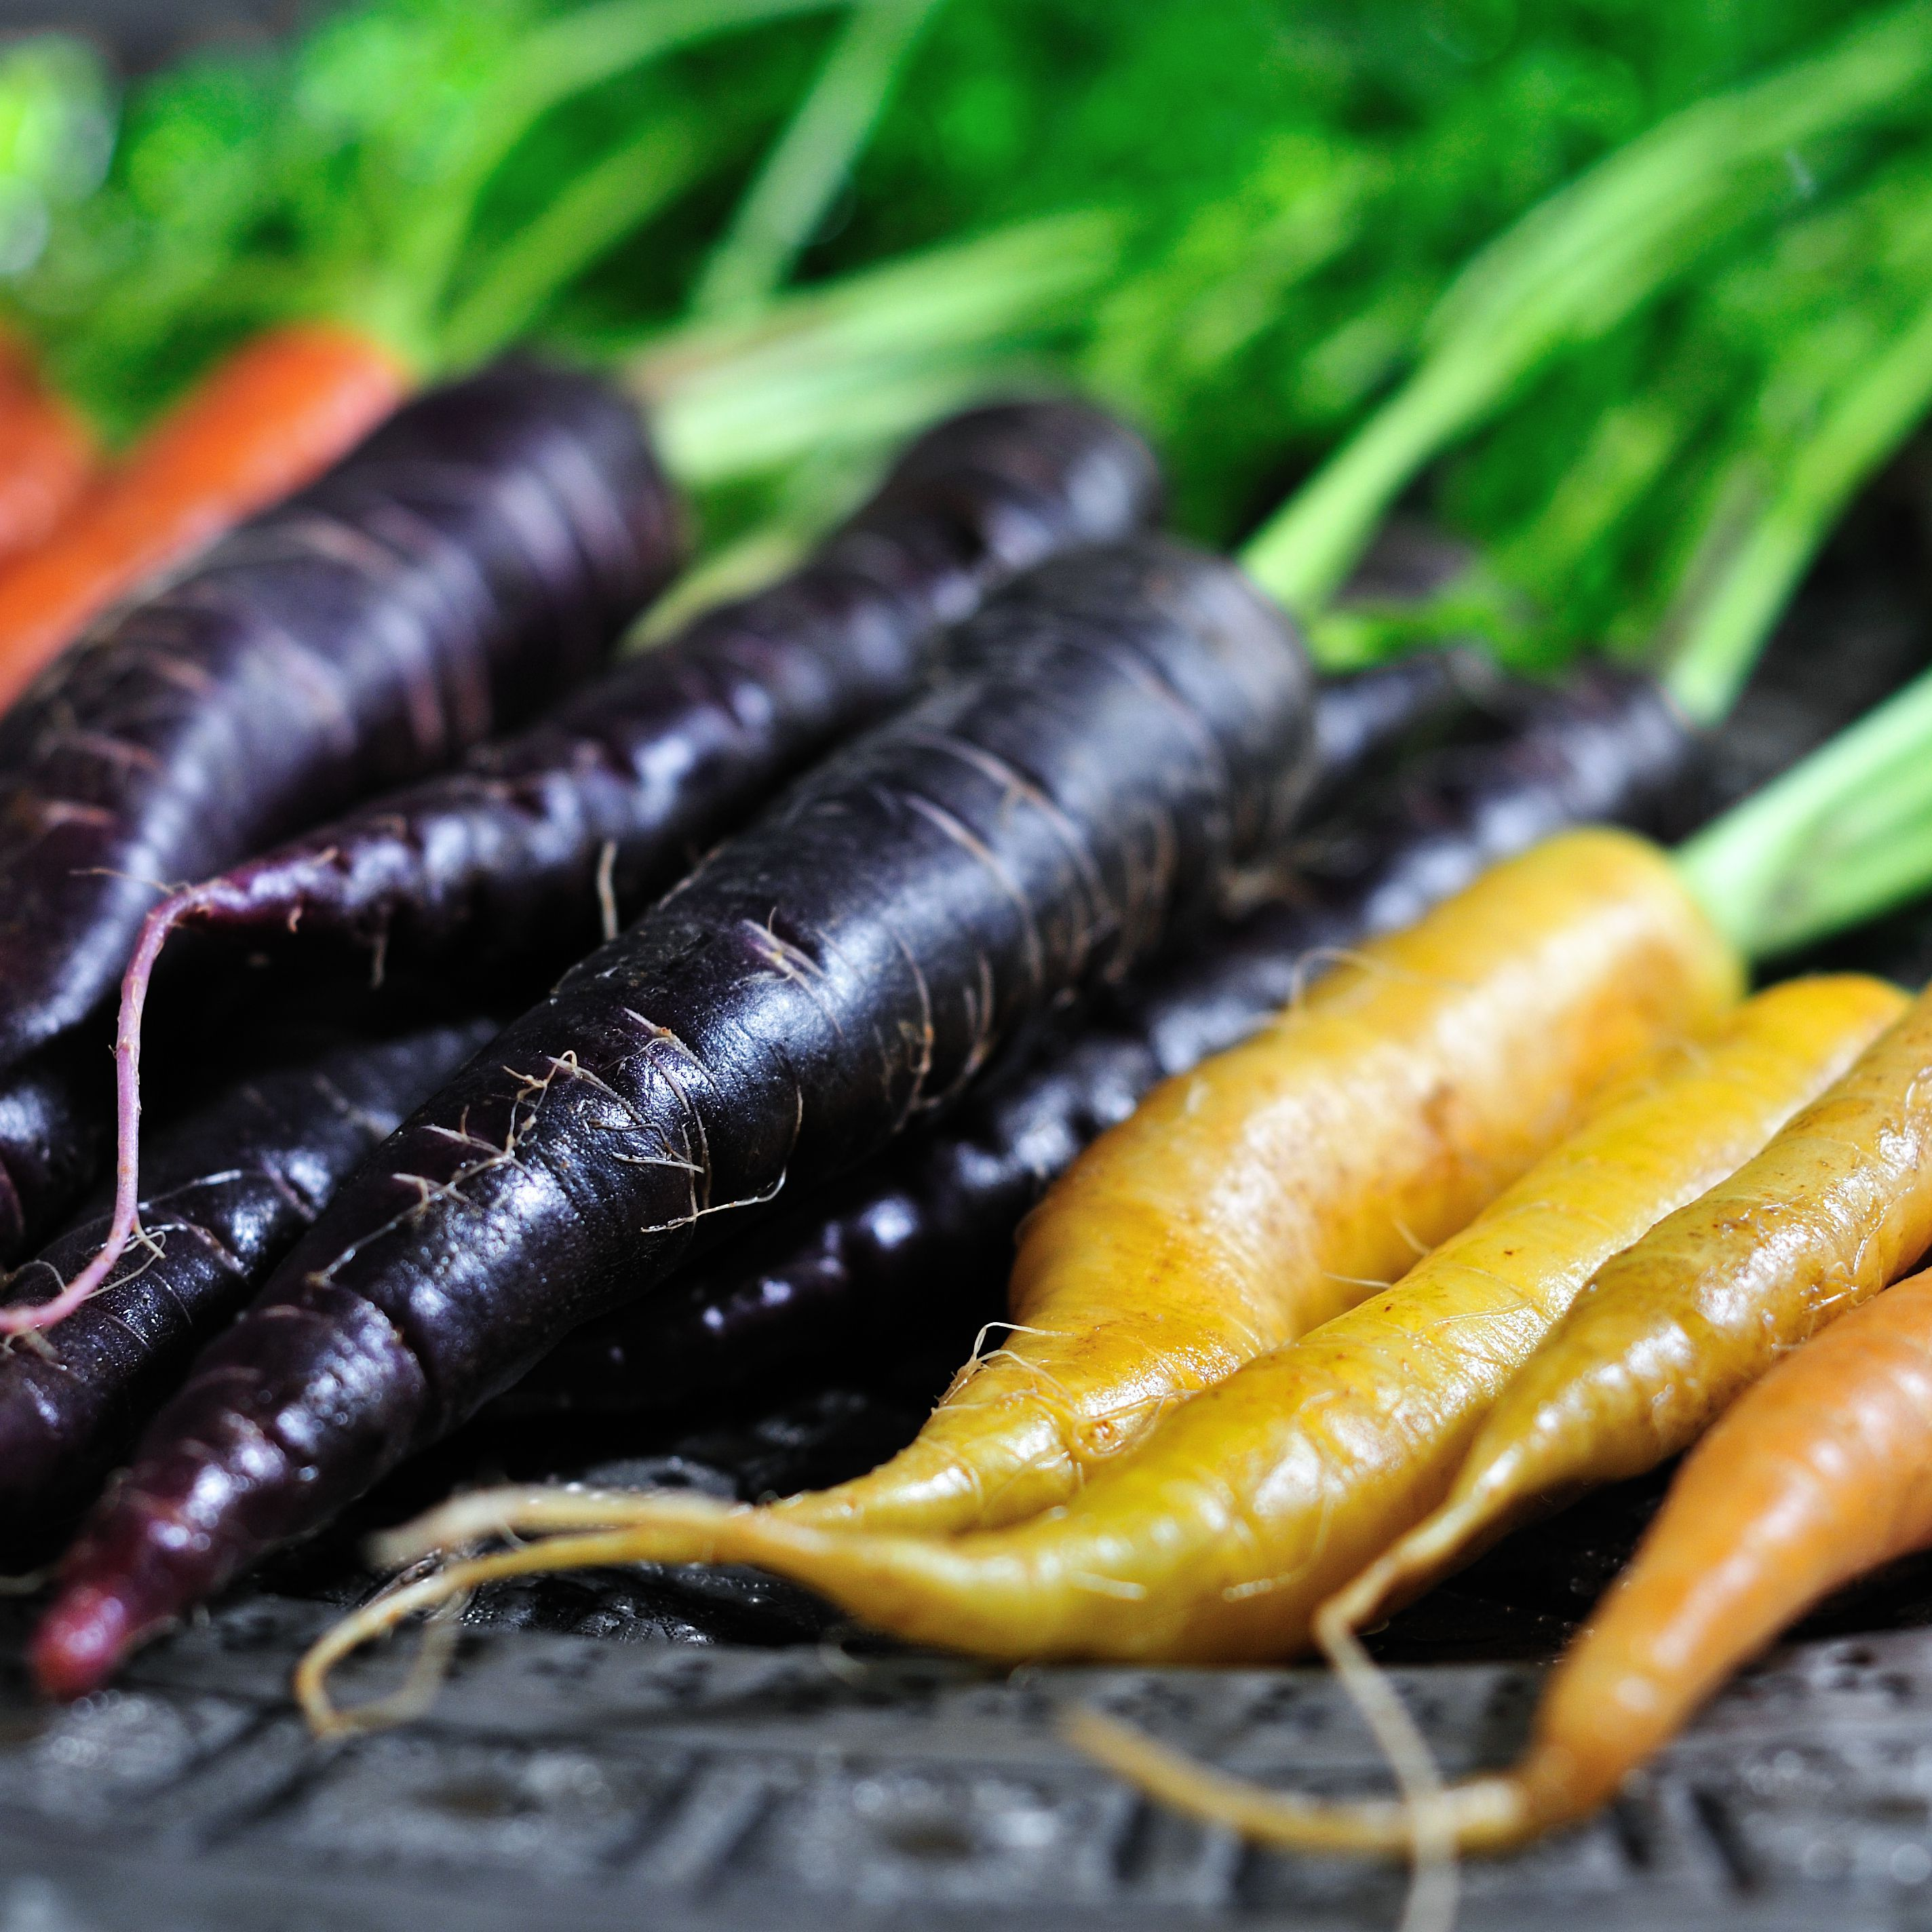 Find Out What Diffe Colored Carrots Taste Like